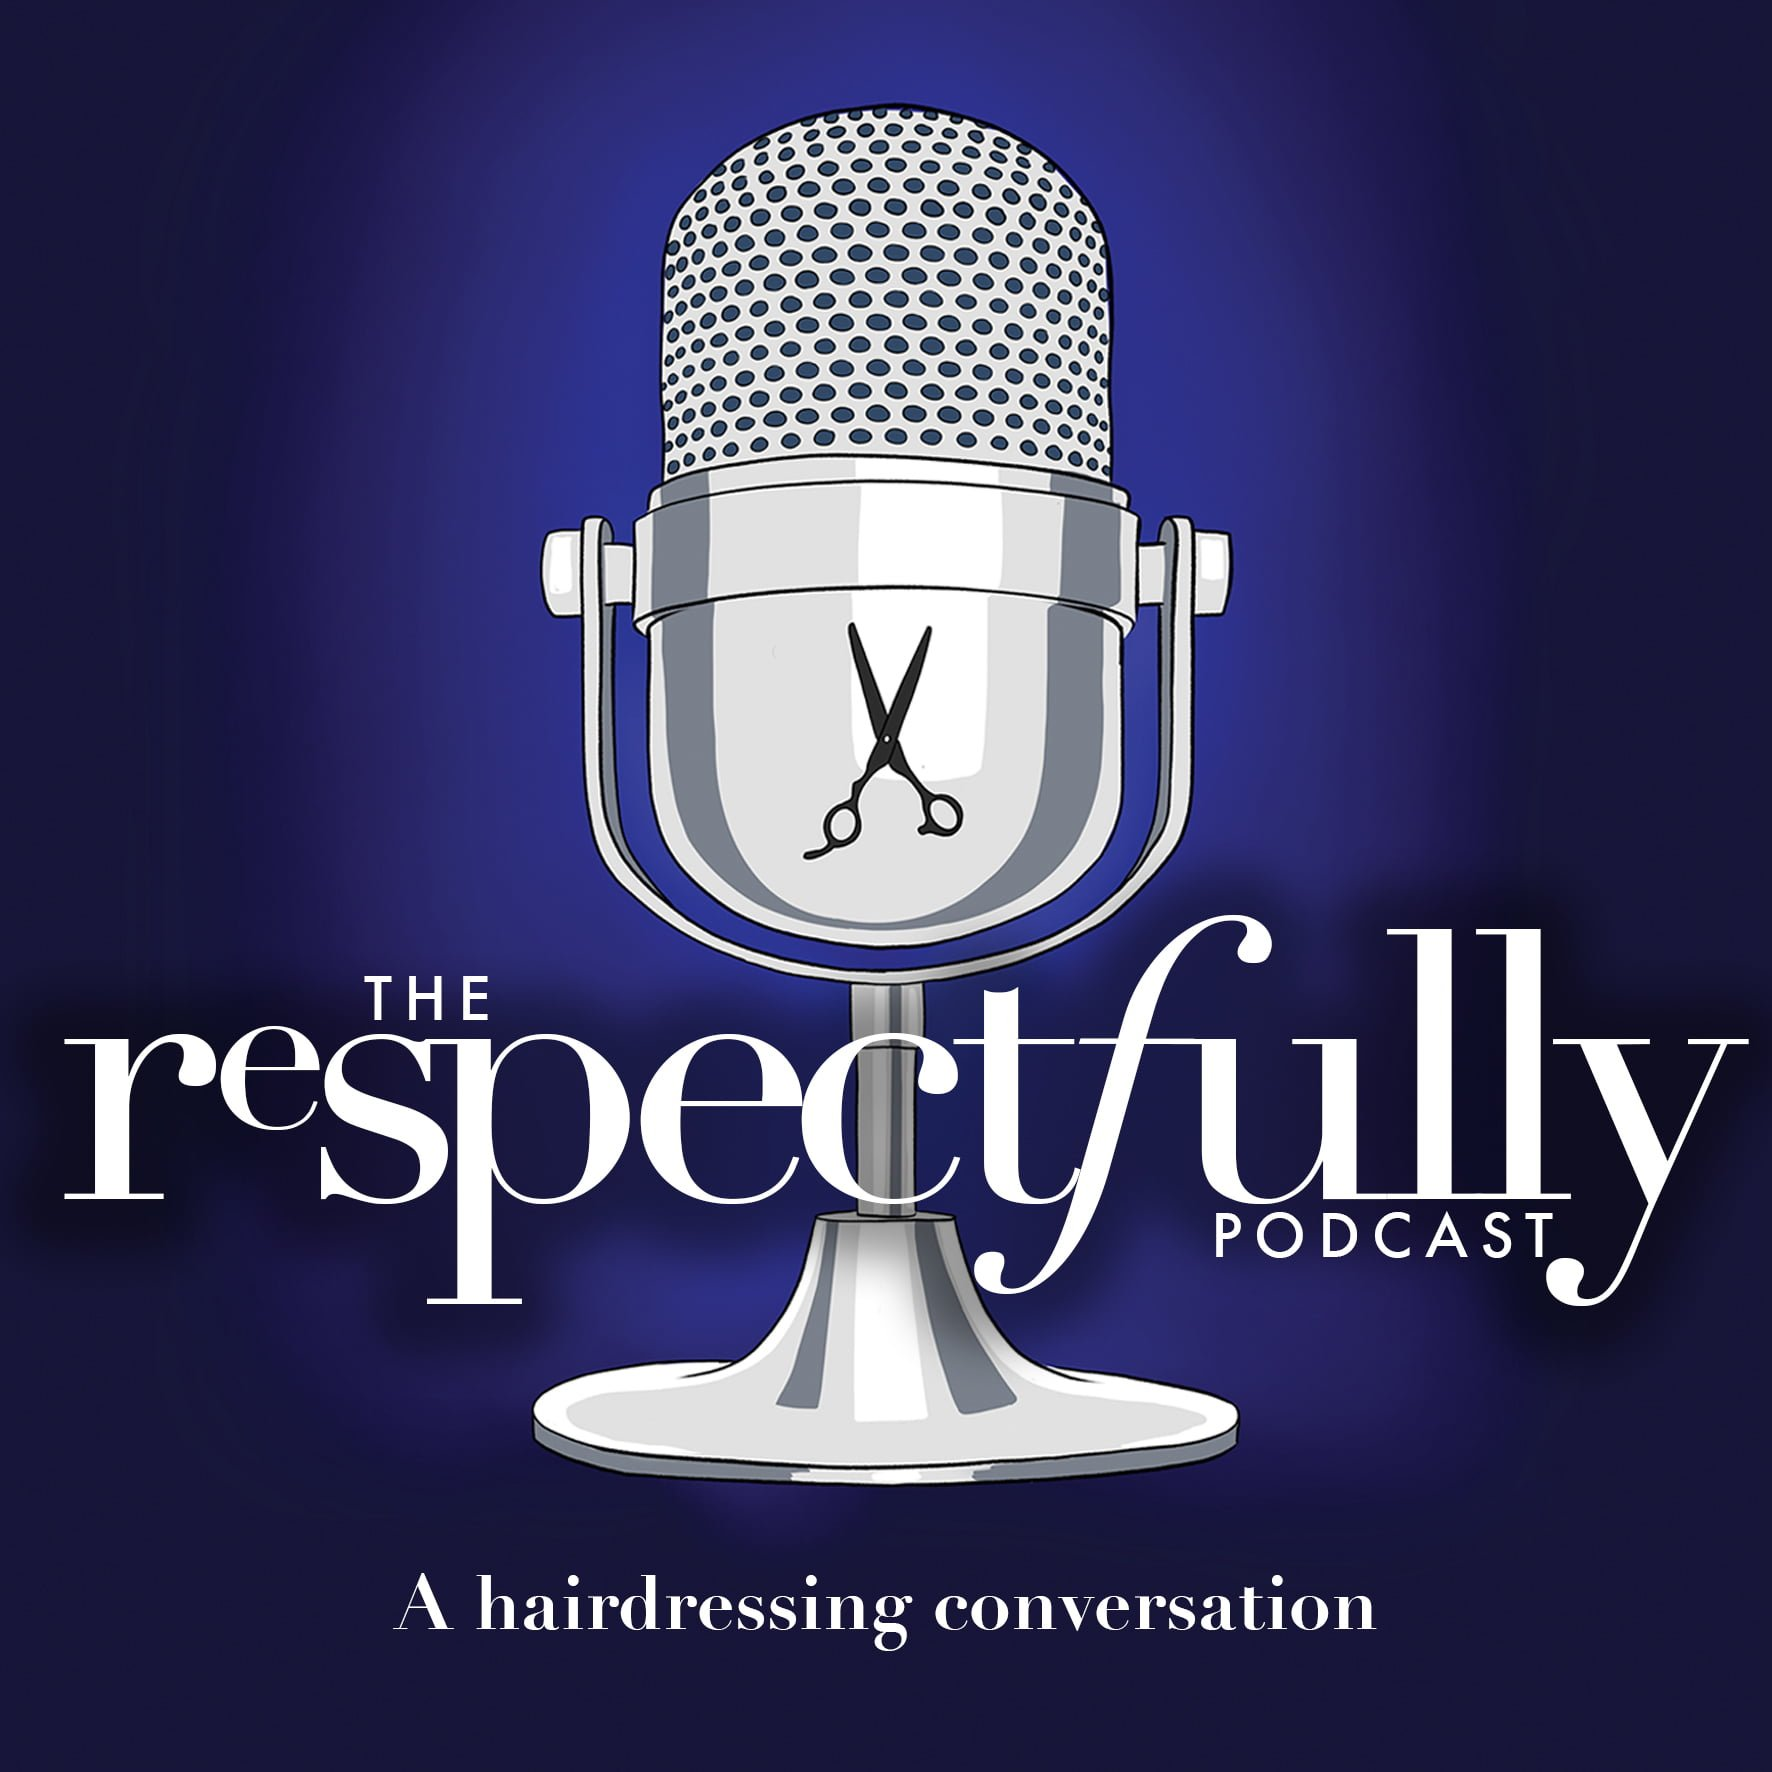 The respectfully podcast about beauty and hair